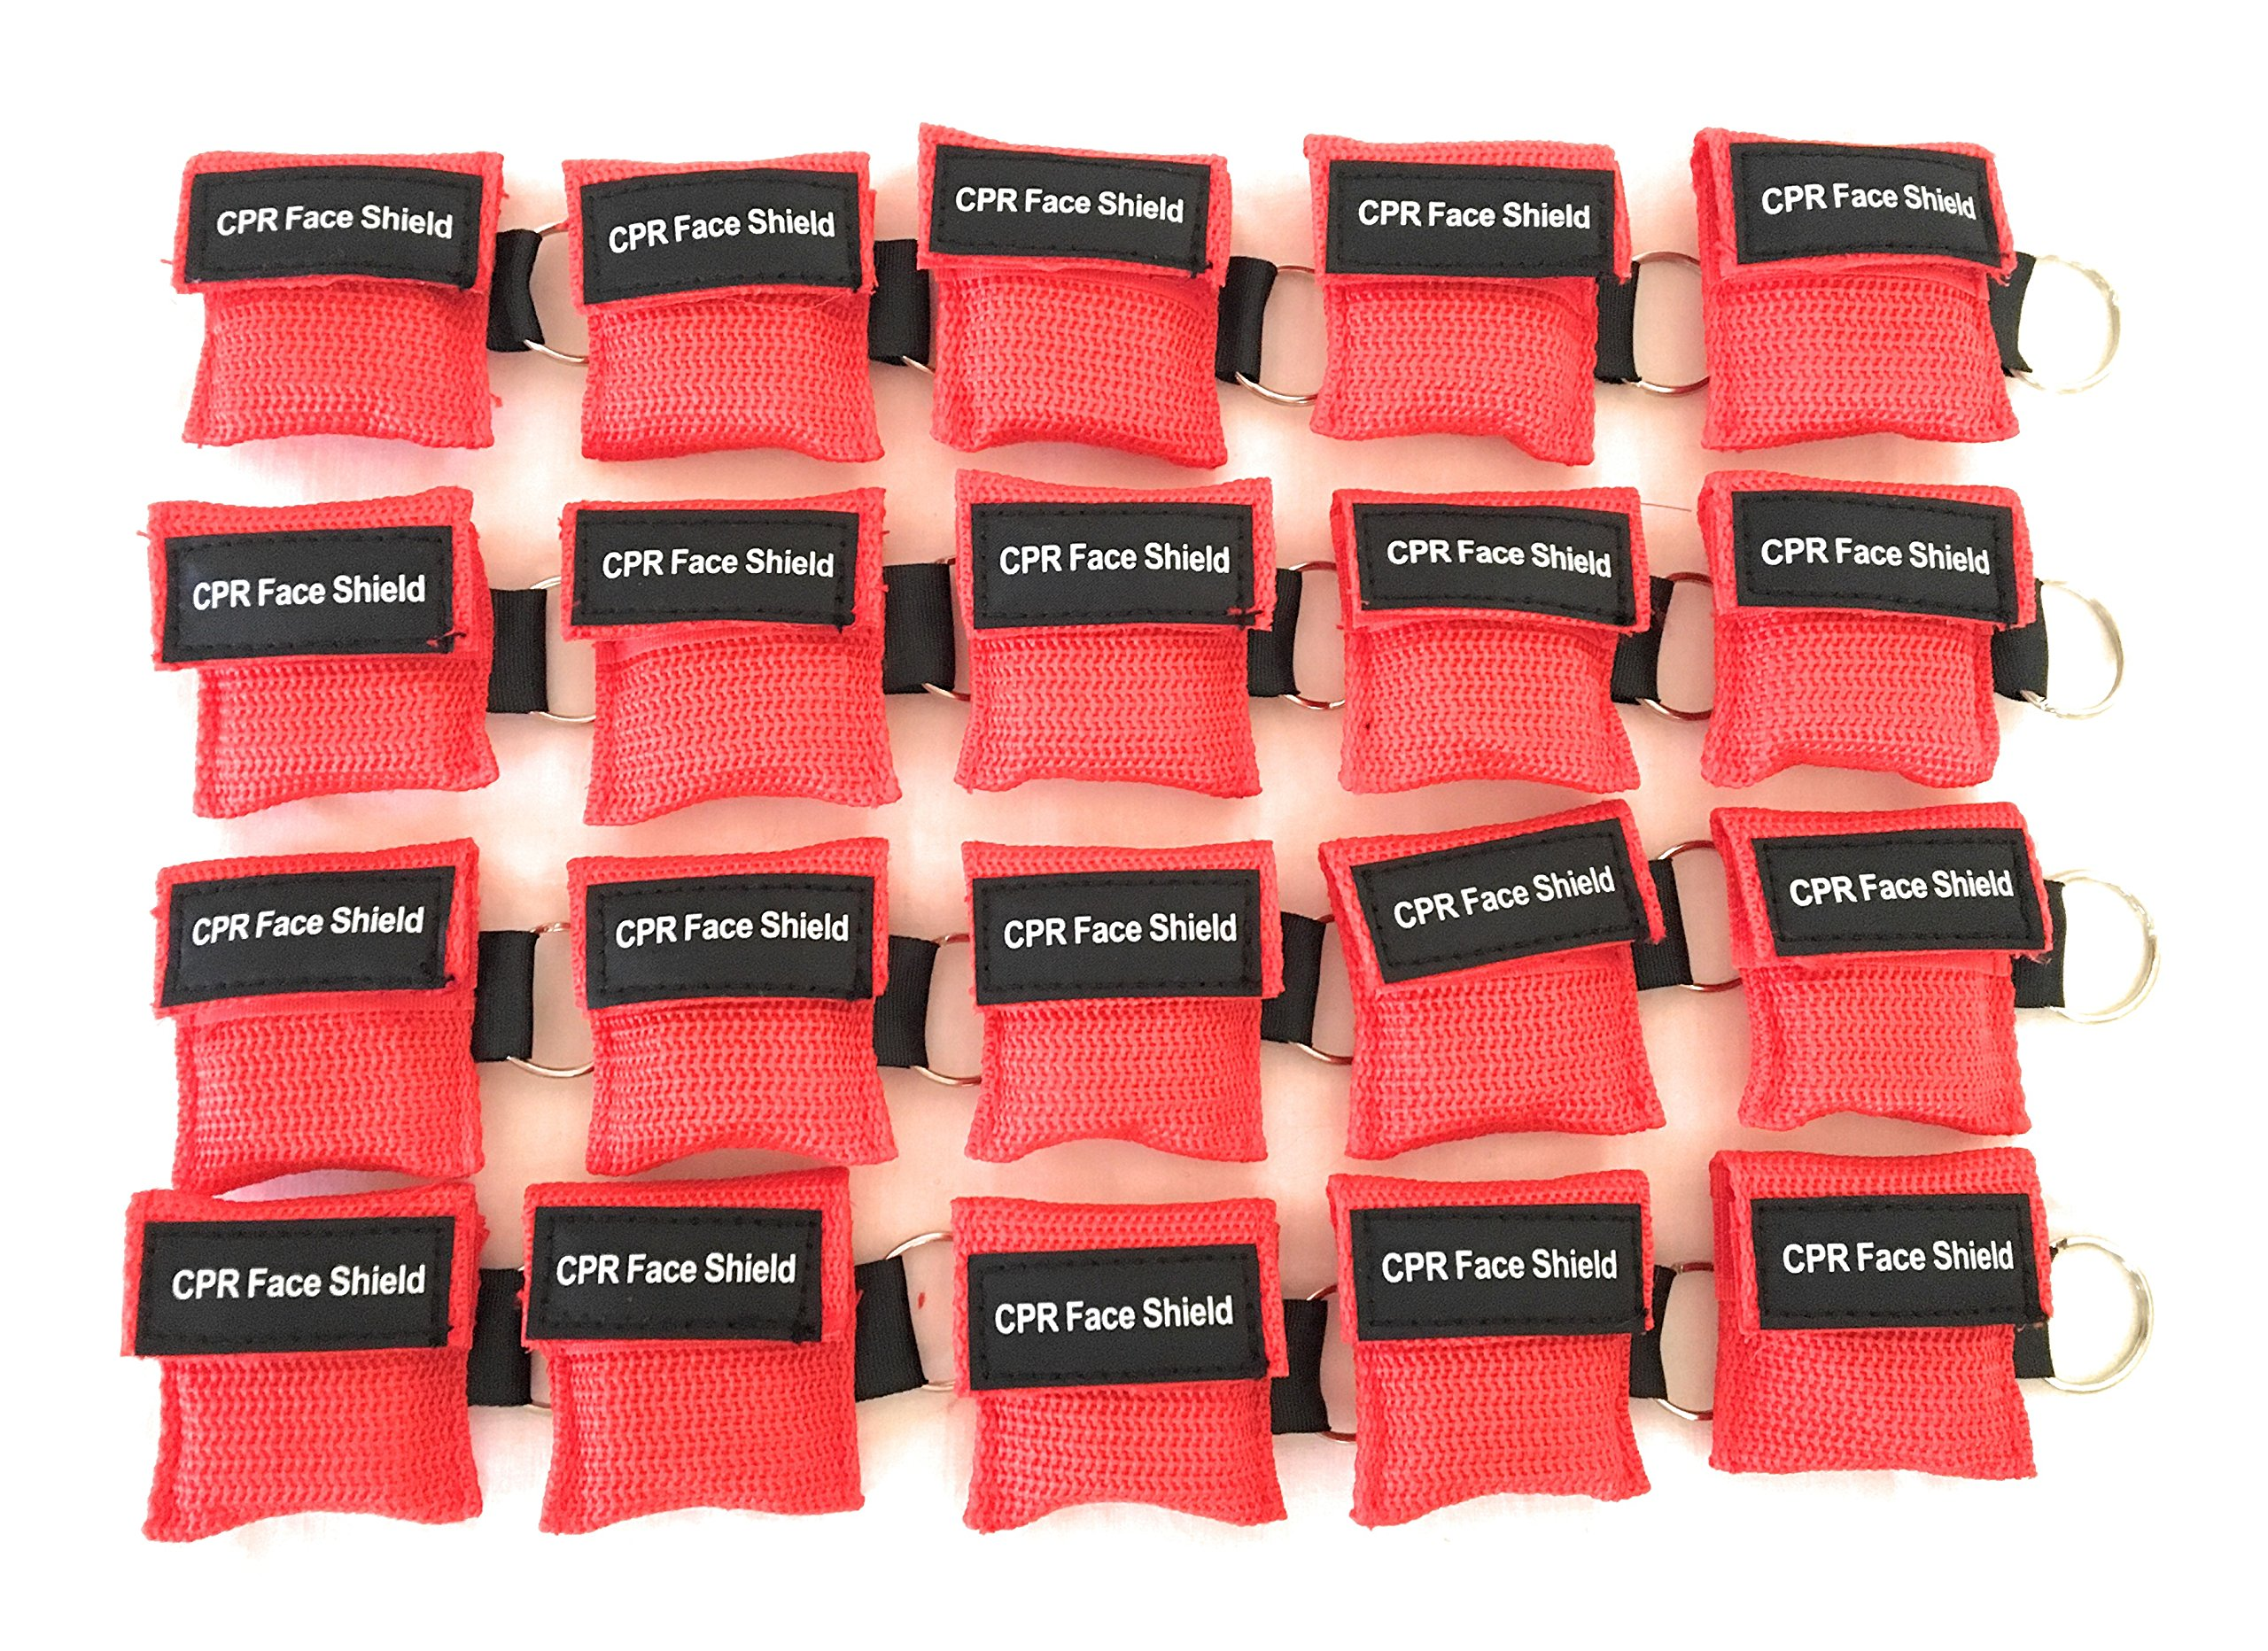 20 Pack CPR Keychain Pocket Mask CPR Emergency Face Shield With One-way Valve Breathing Barrier For First Aid Rescue or AED Training By Saving Is Us